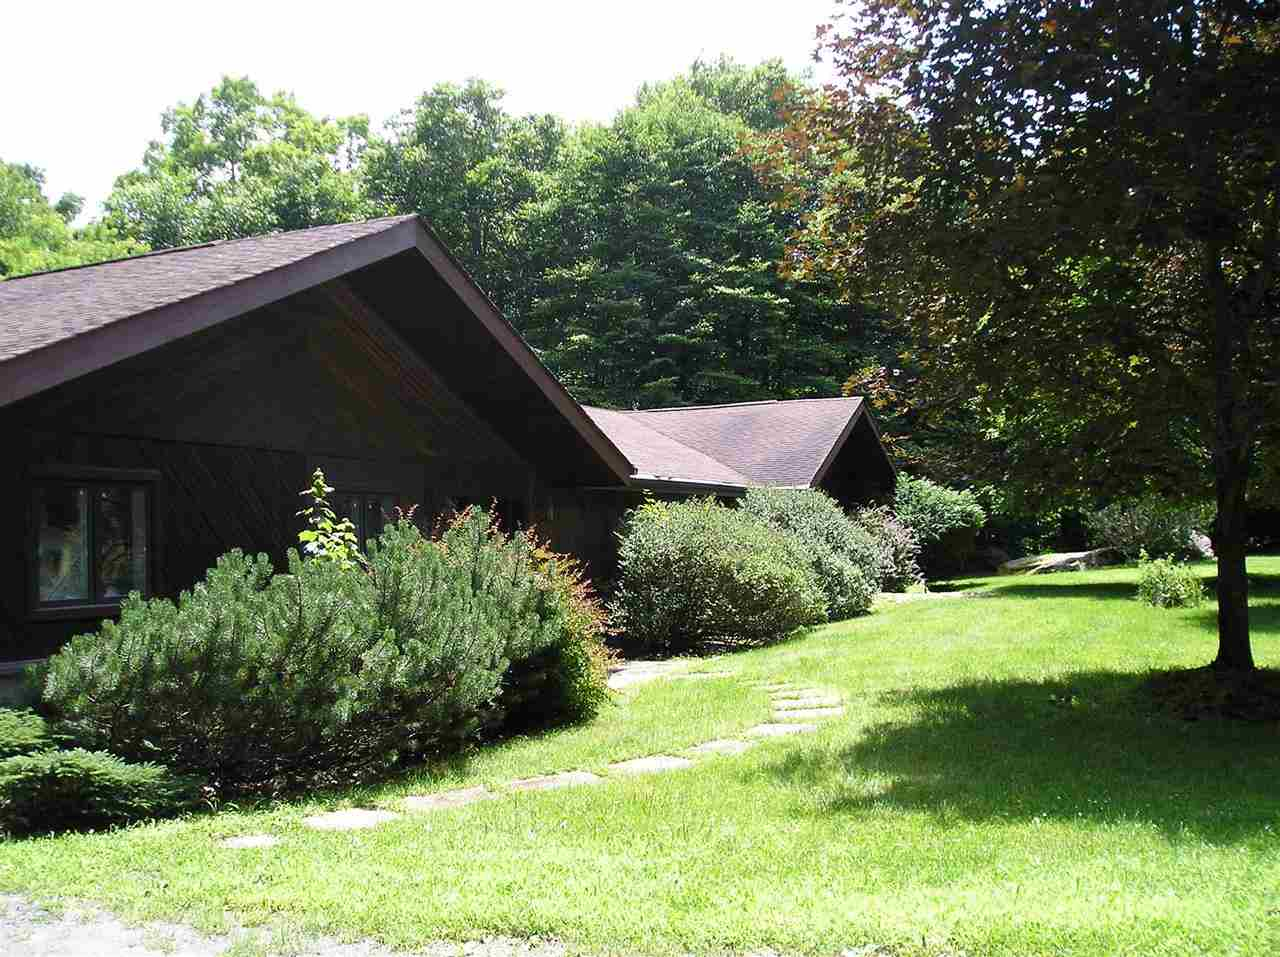 Image of Residential for Sale near Monticello, New York, in Sullivan county: 4.68 acres